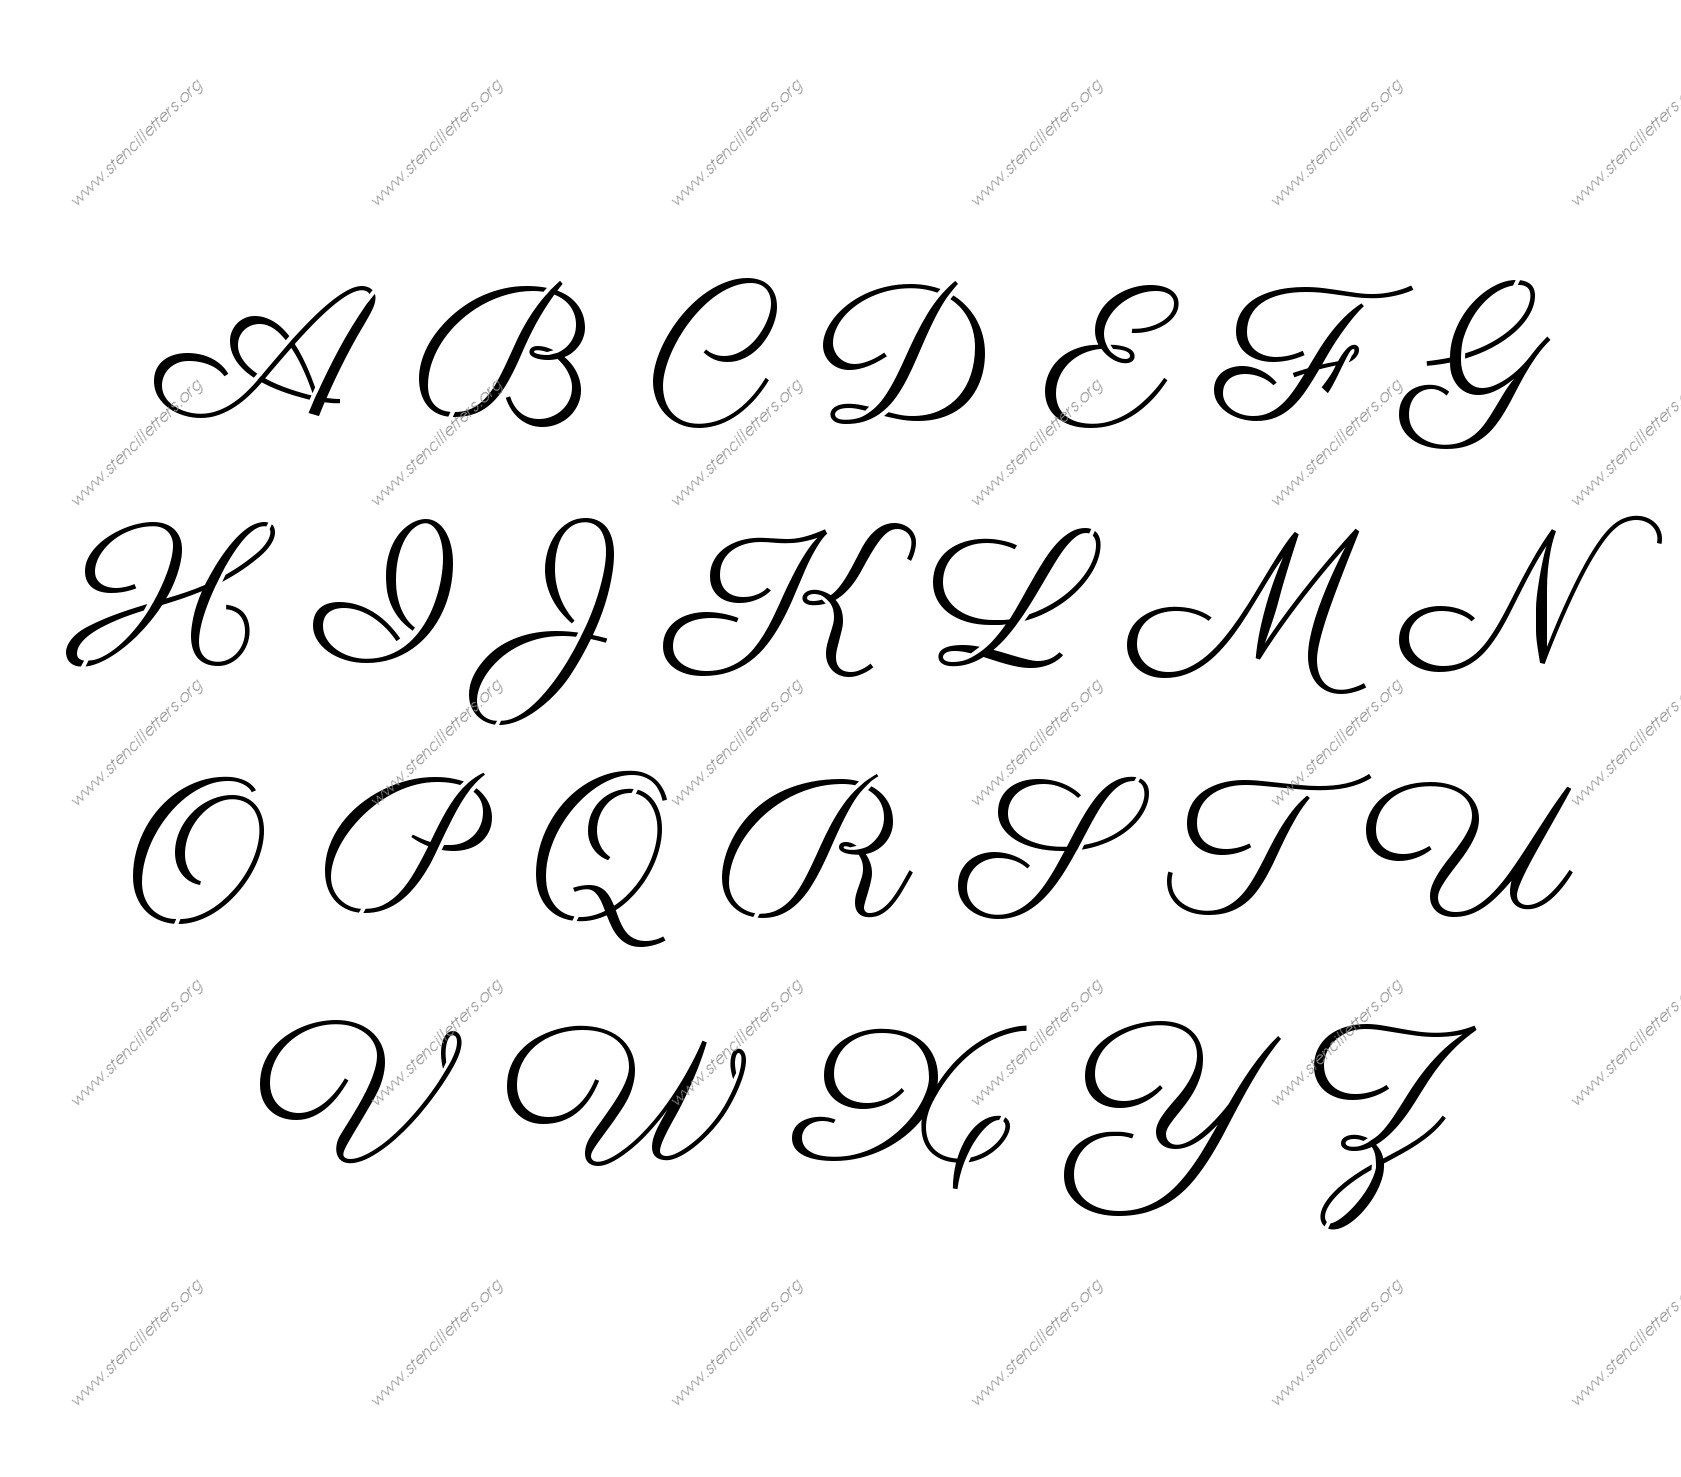 Free Printable Alphabet Stencil Letters Template | Art & Crafts - Free Printable Fancy Number Stencils